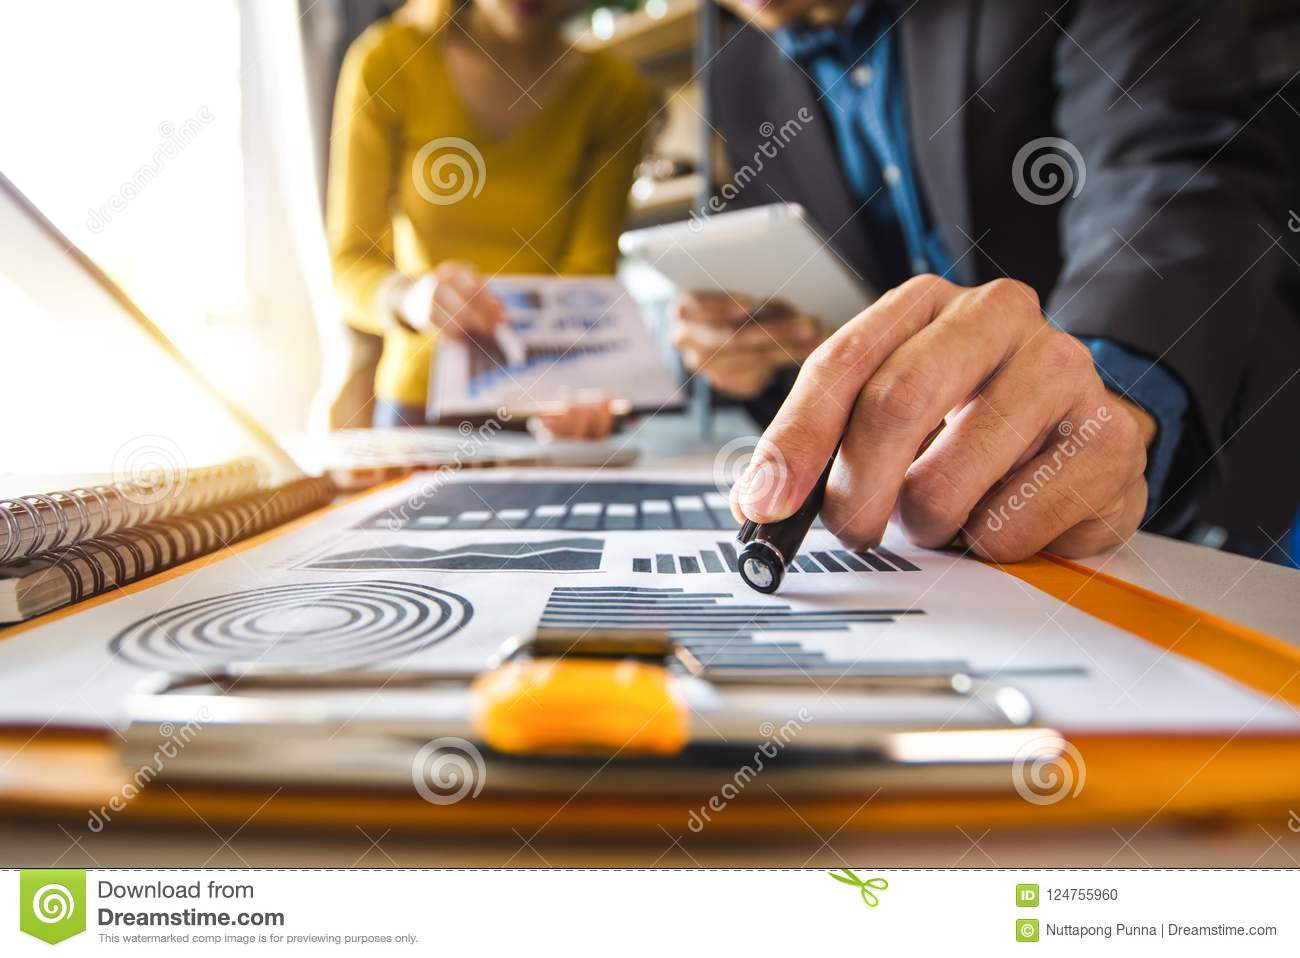 Business documents on office table with smart phone and digital tablet and graph